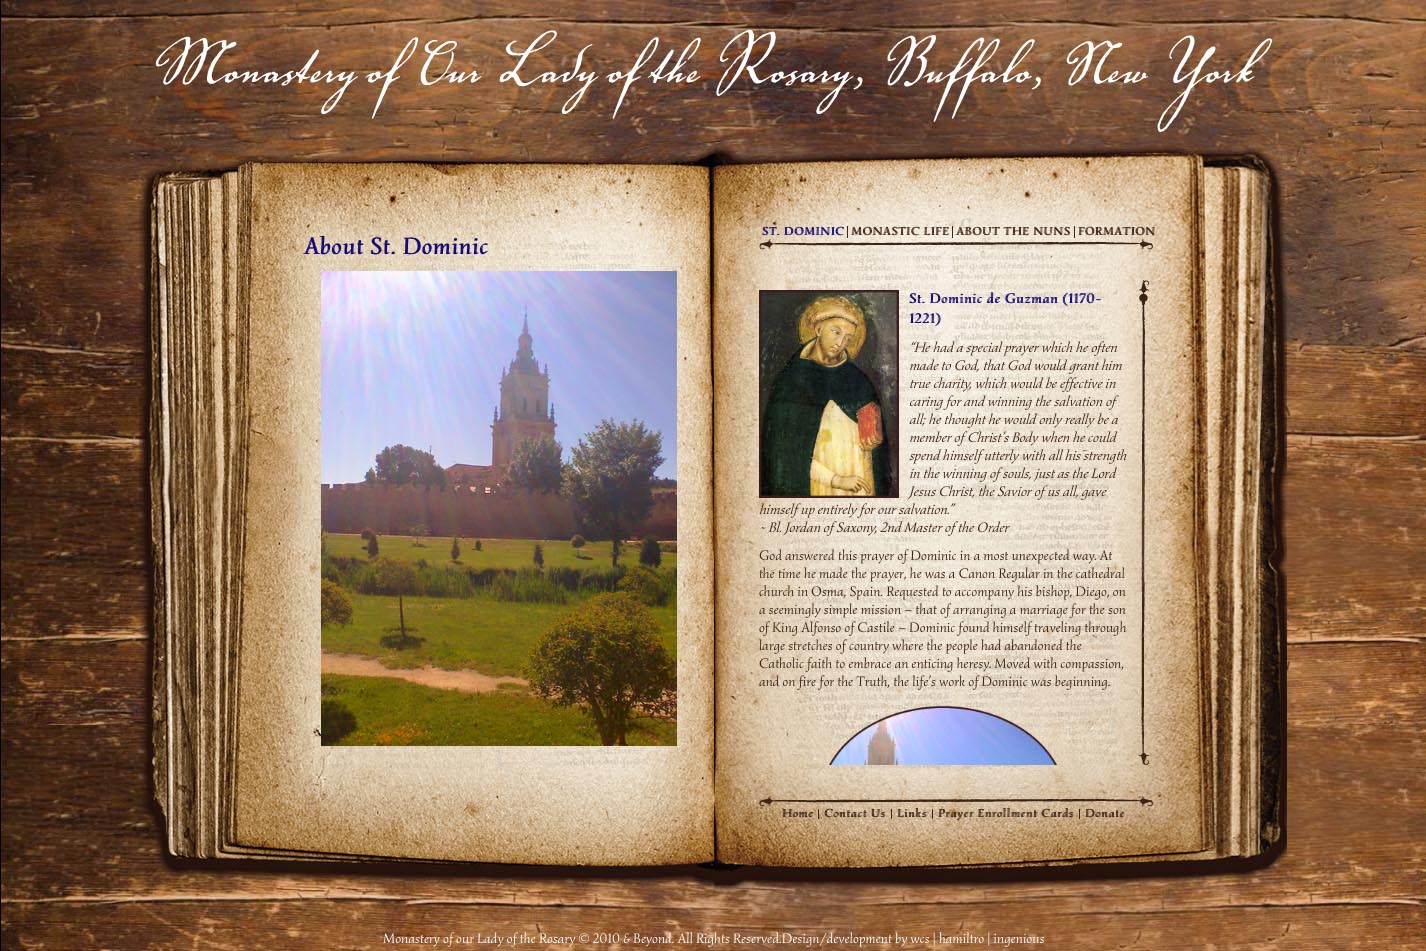 web design for a monastery - about page